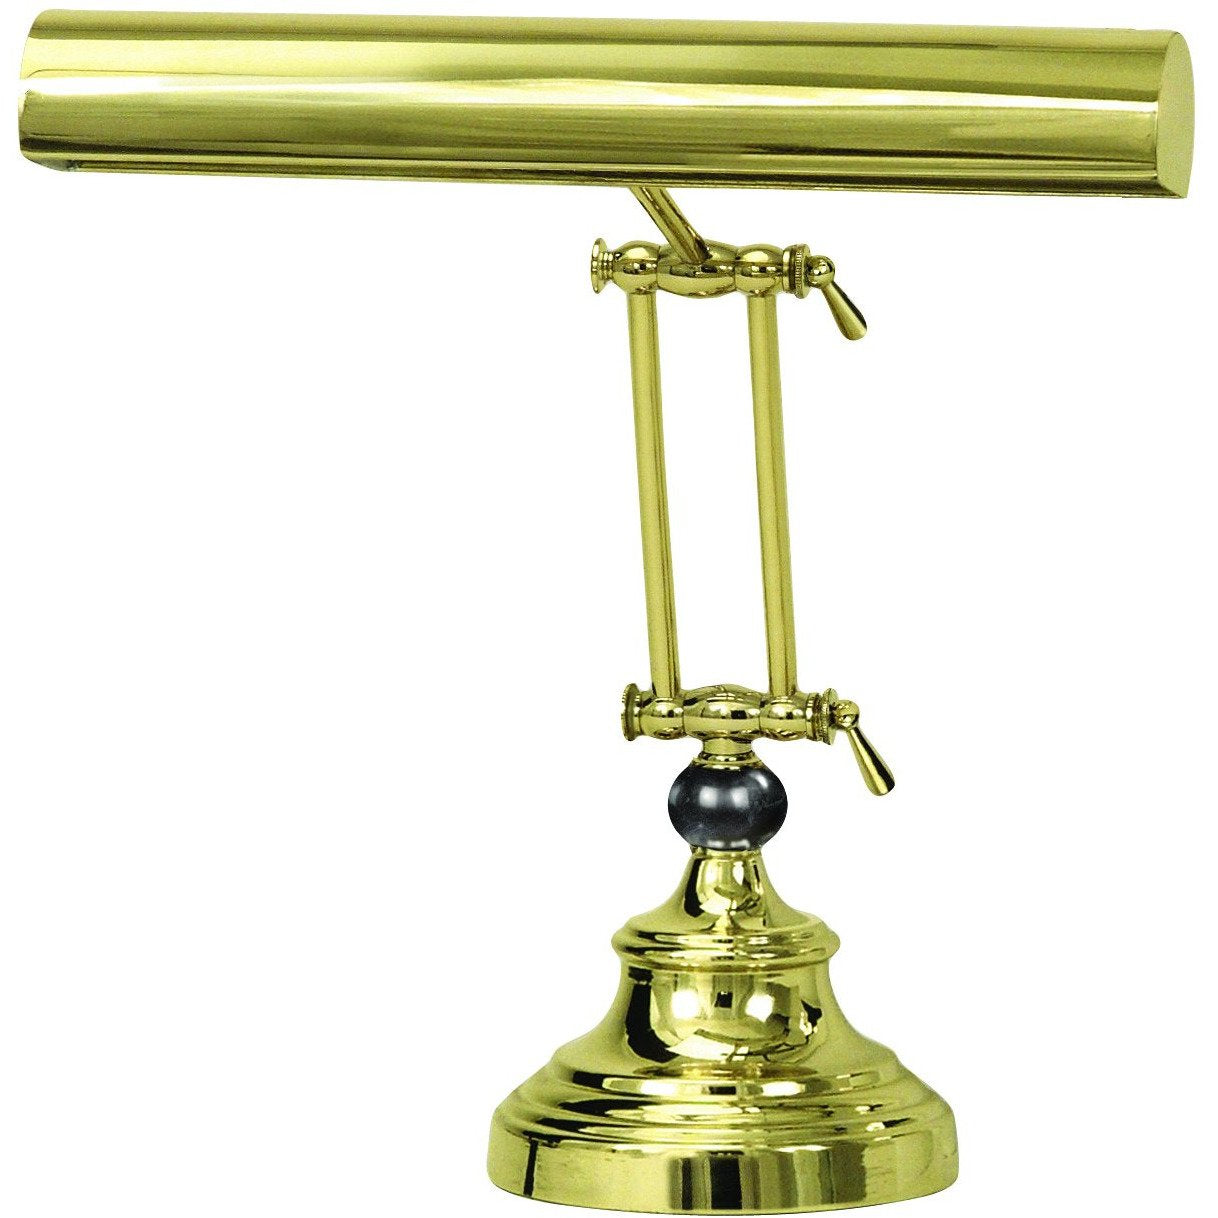 House Of Troy Desk Lamps Advent Desk/Piano Lamp by House Of Troy AP14-42-61